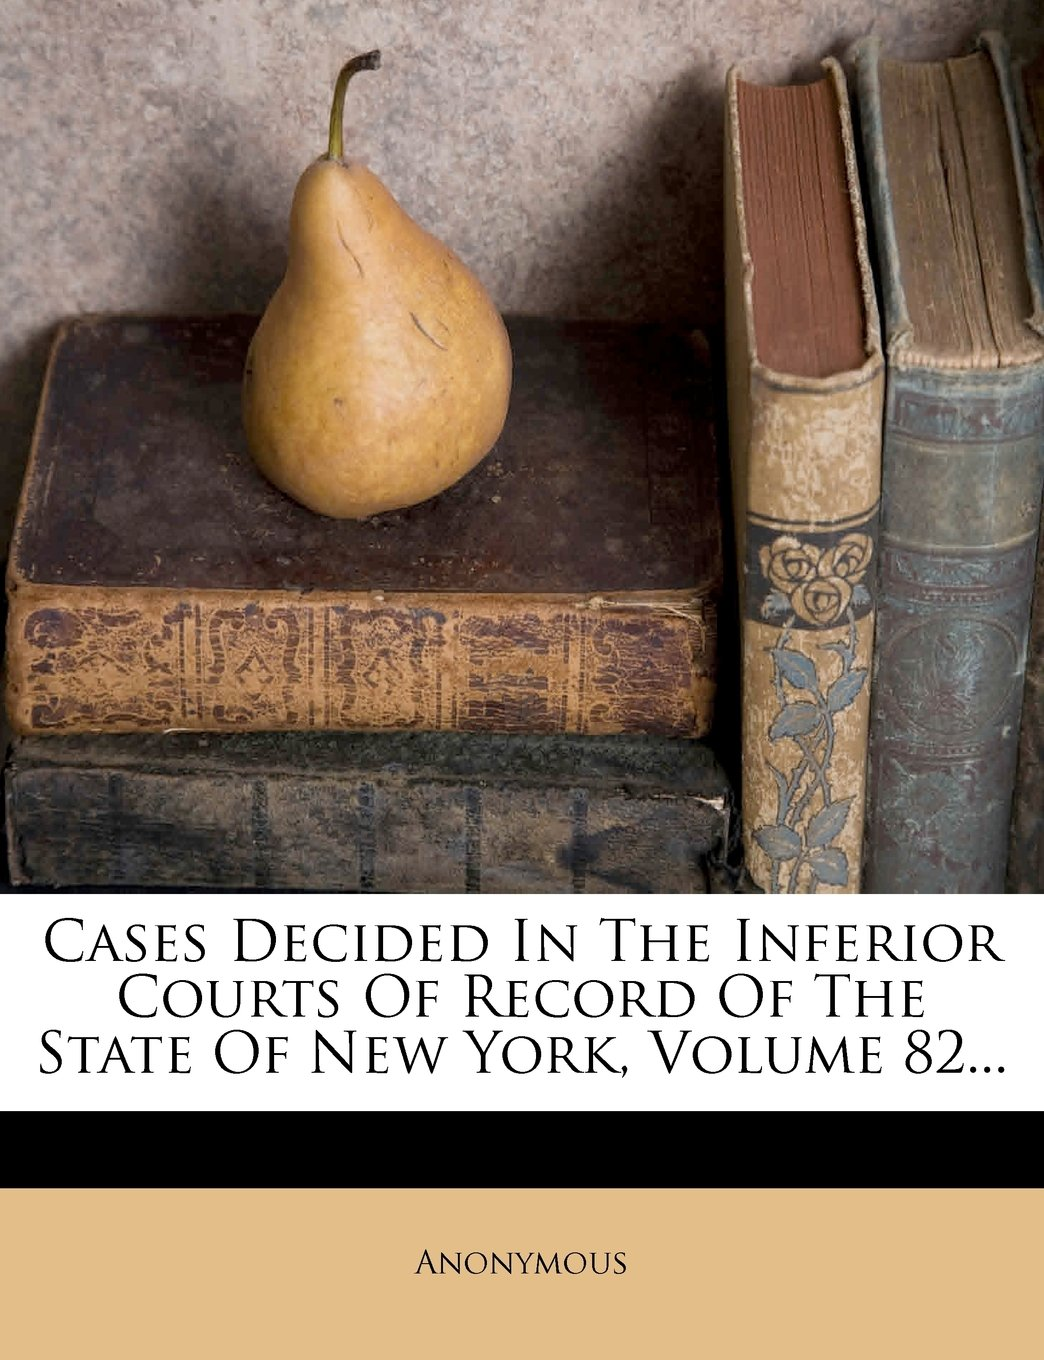 Cases Decided In The Inferior Courts Of Record Of The State Of New York, Volume 82... pdf